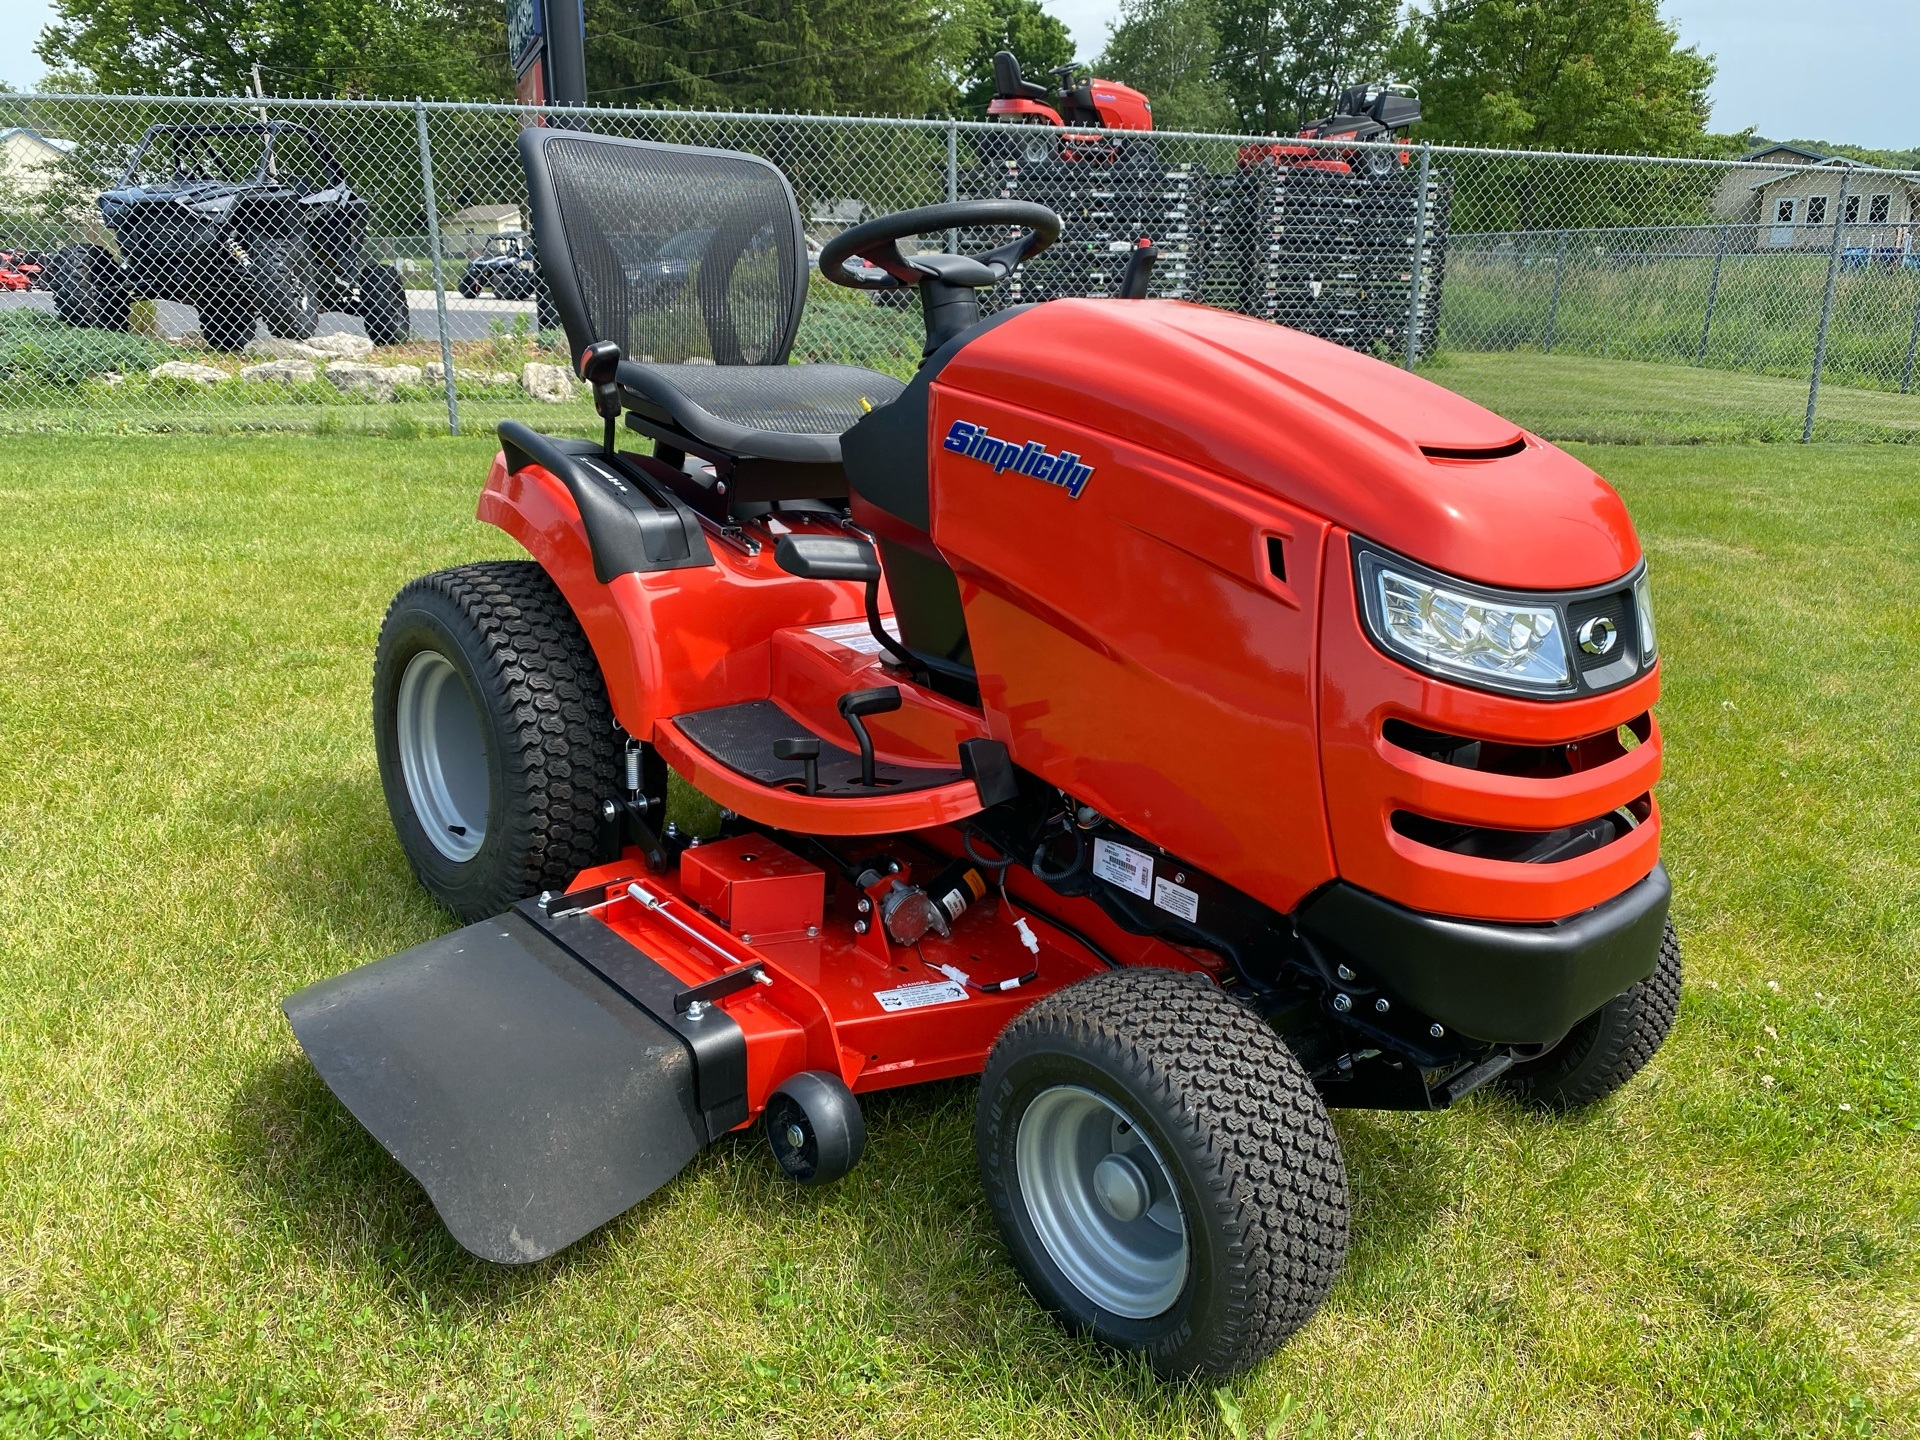 2019 Simplicity Broadmoor 52 in. Briggs & Stratton 25 hp in Fond Du Lac, Wisconsin - Photo 4